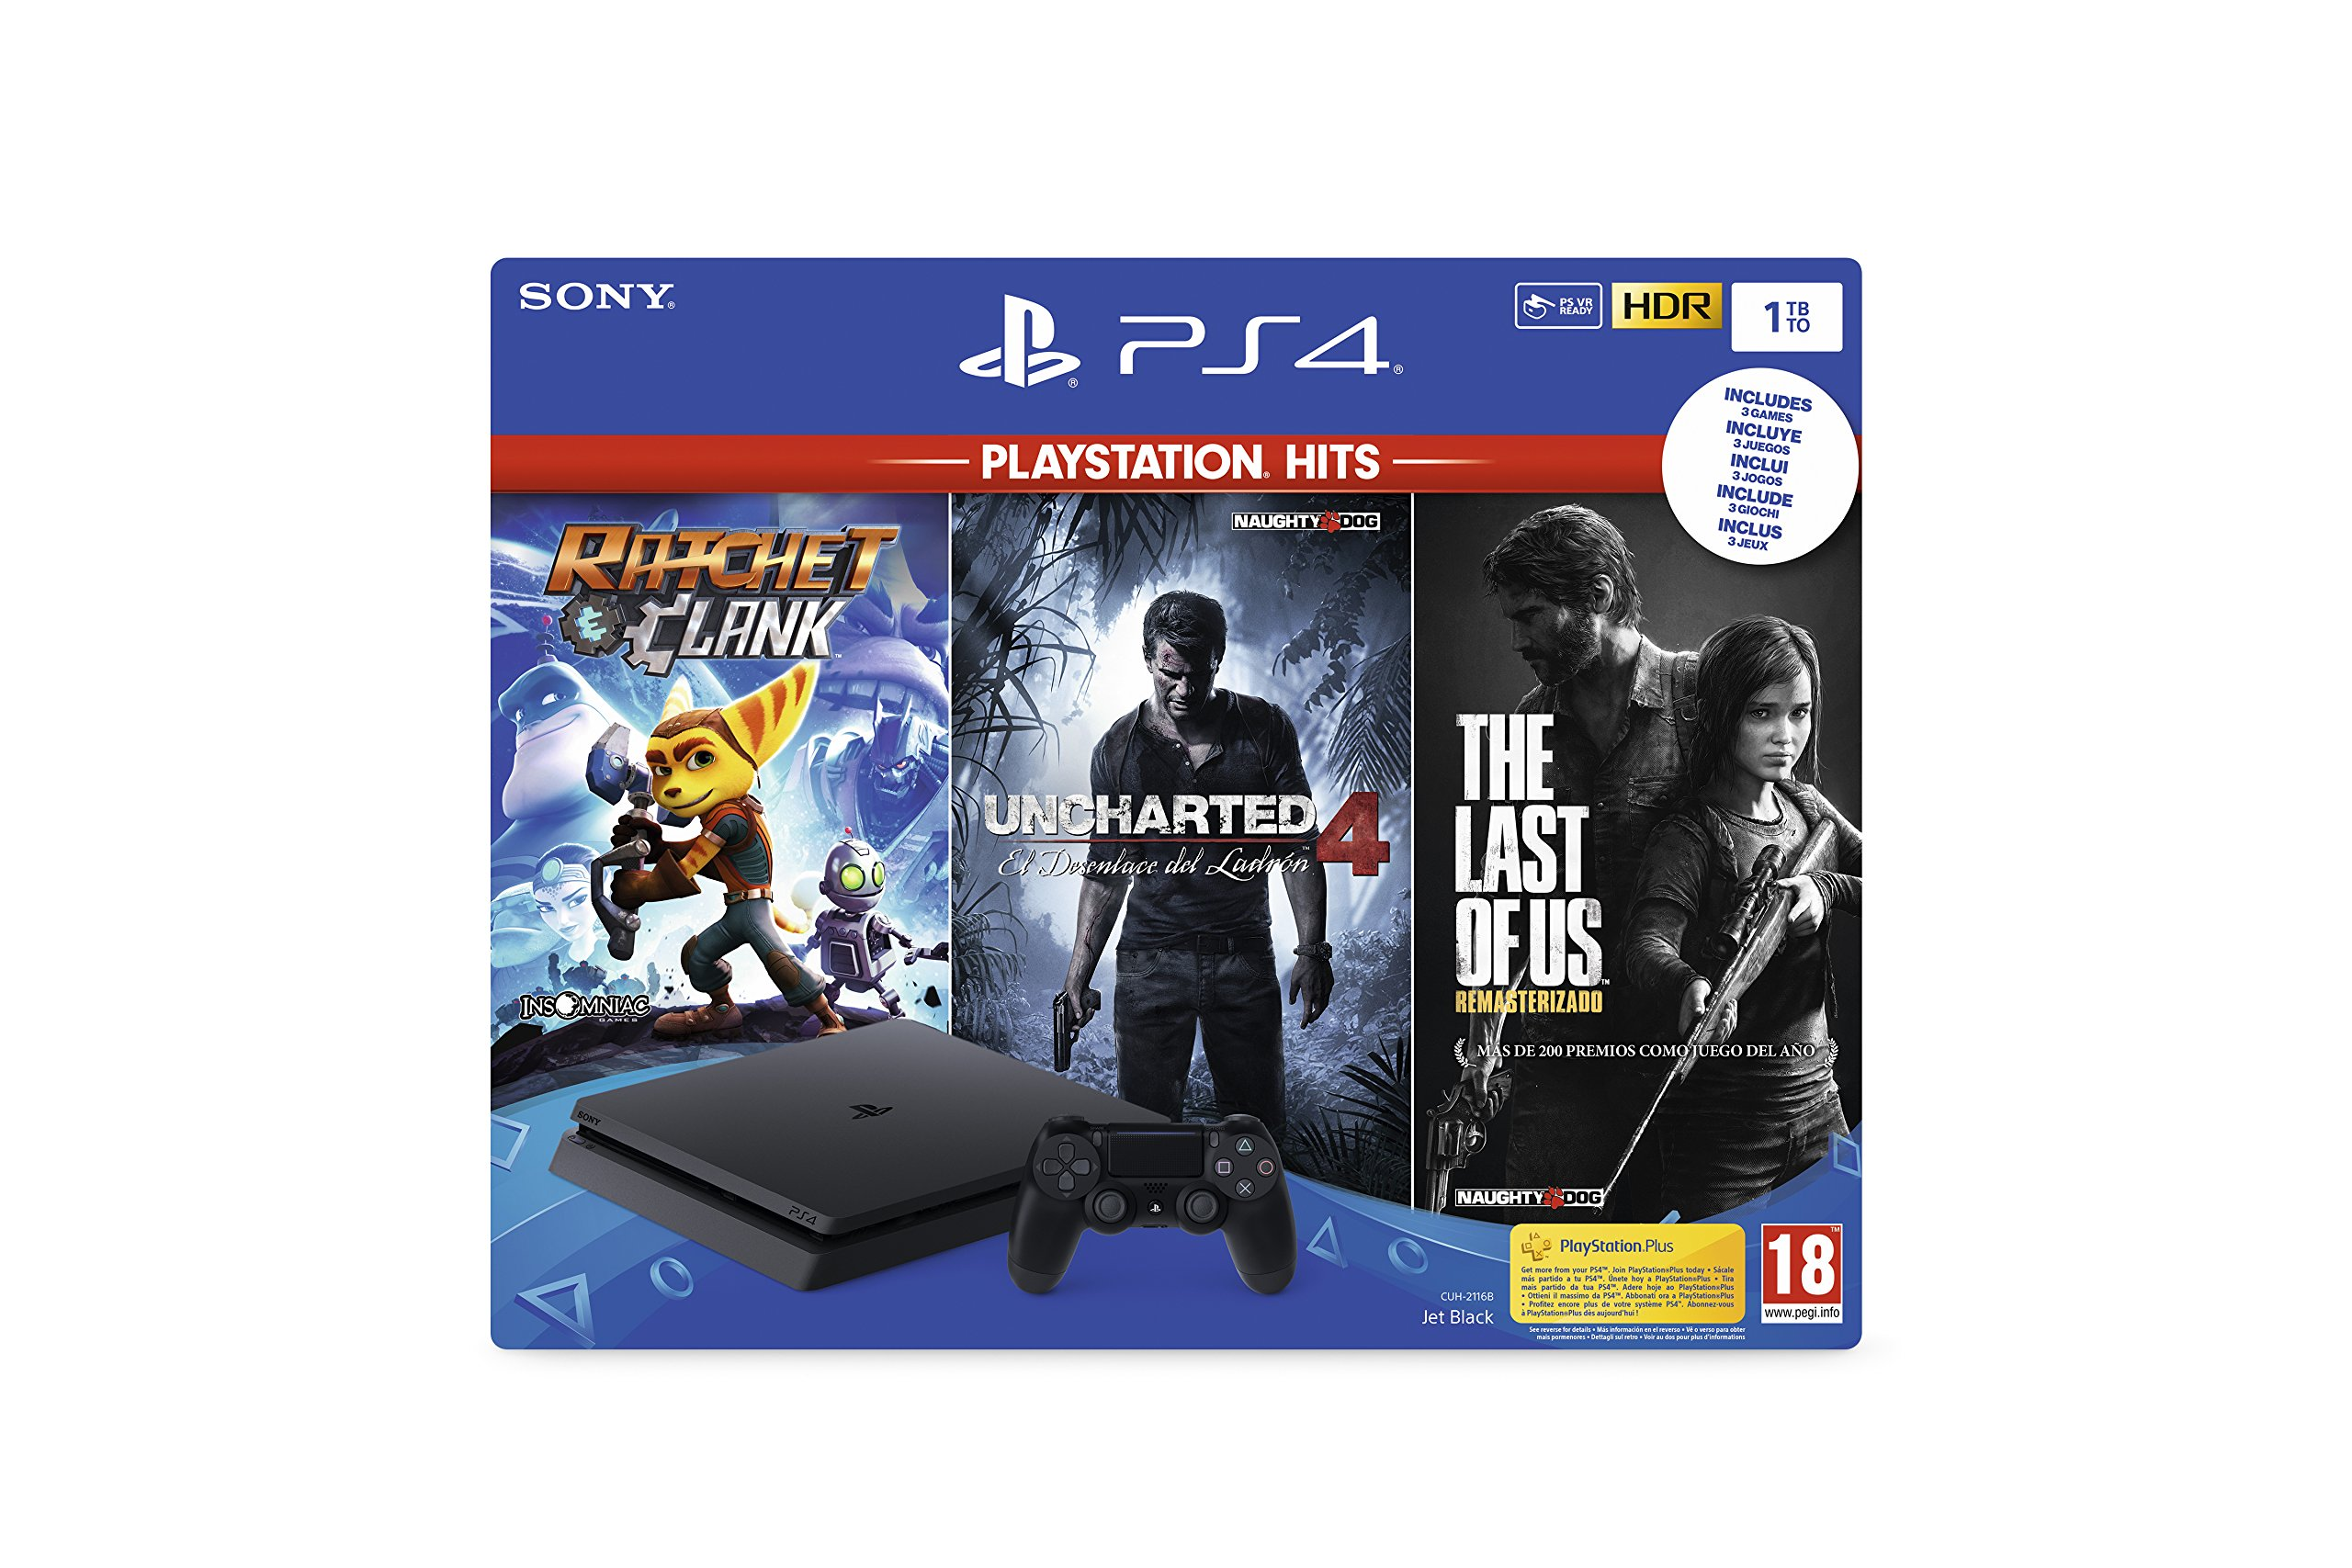 Playstation 4 (PS4) - Consola 1TB + Ratchet & Clank + The Last of Us + Uncharted 4: Sony: Amazon.es: Videojuegos